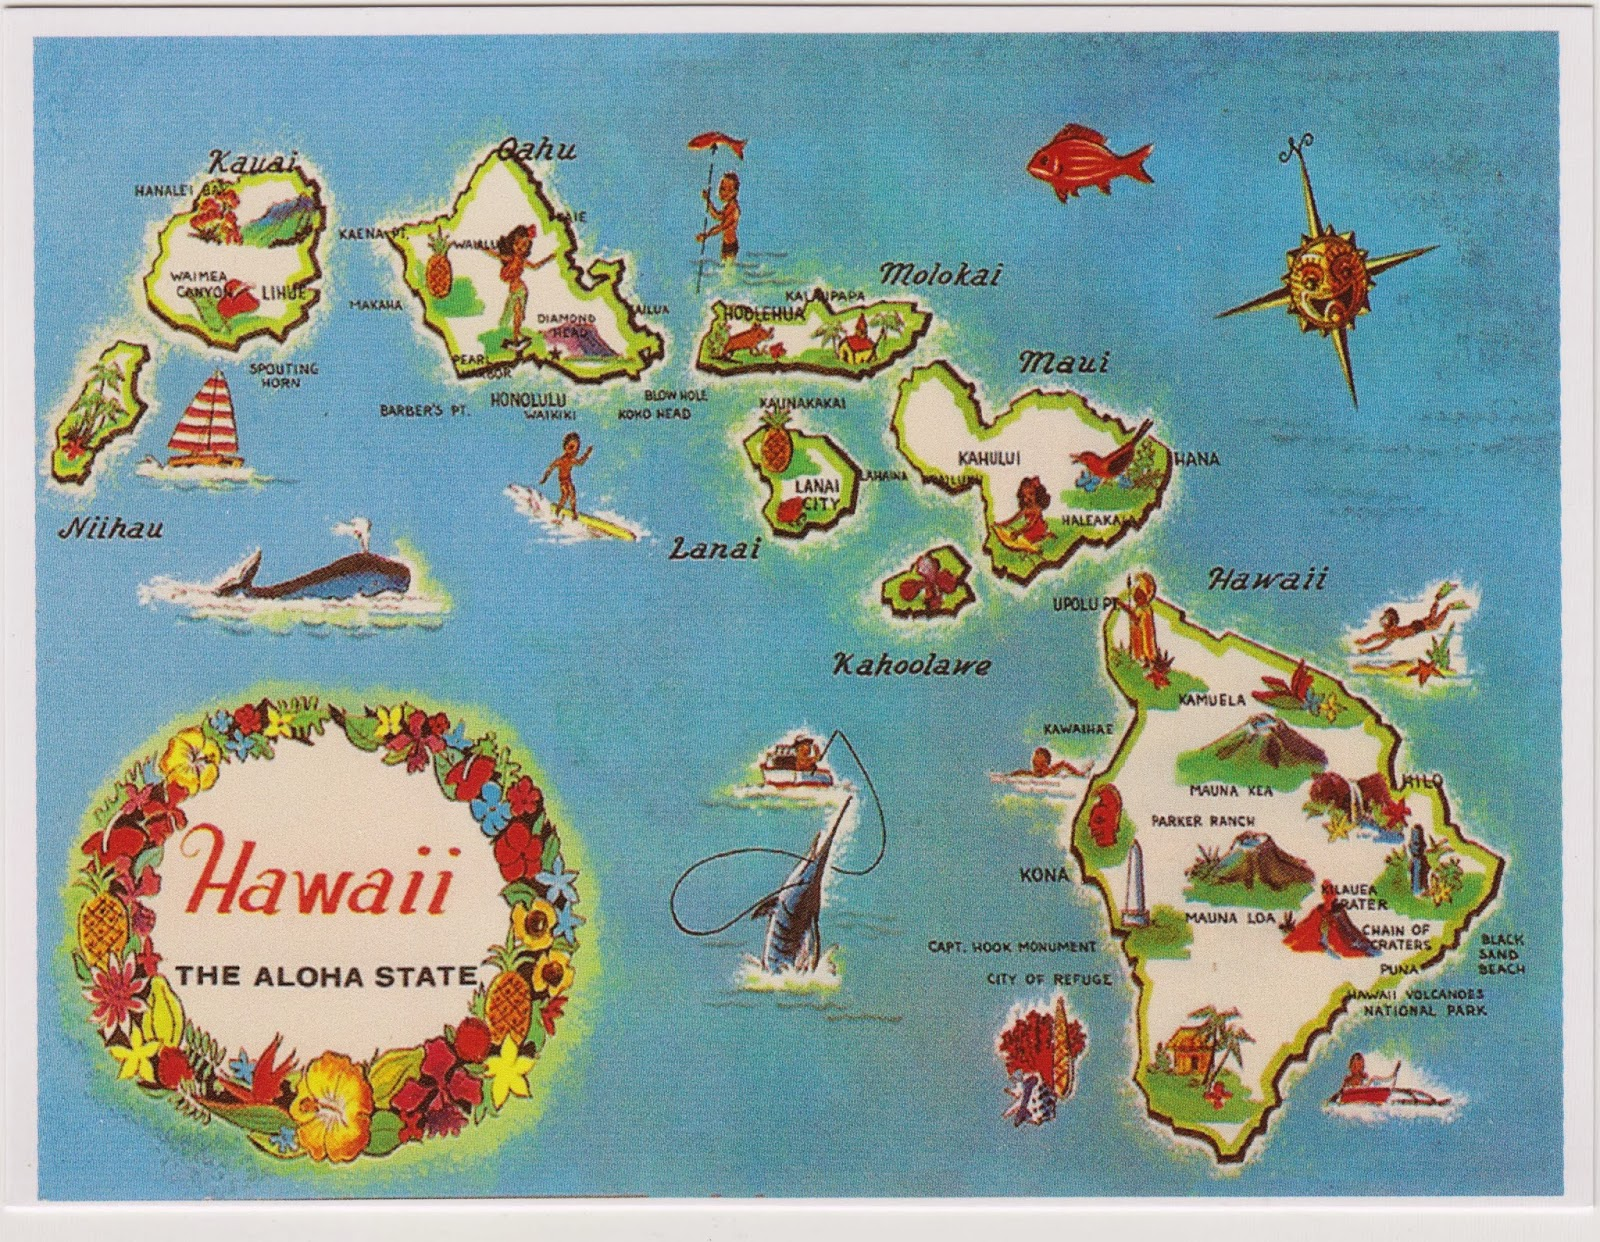 One Postcard A Day Hawaii The Aloha State - Pretty us map with hawaii